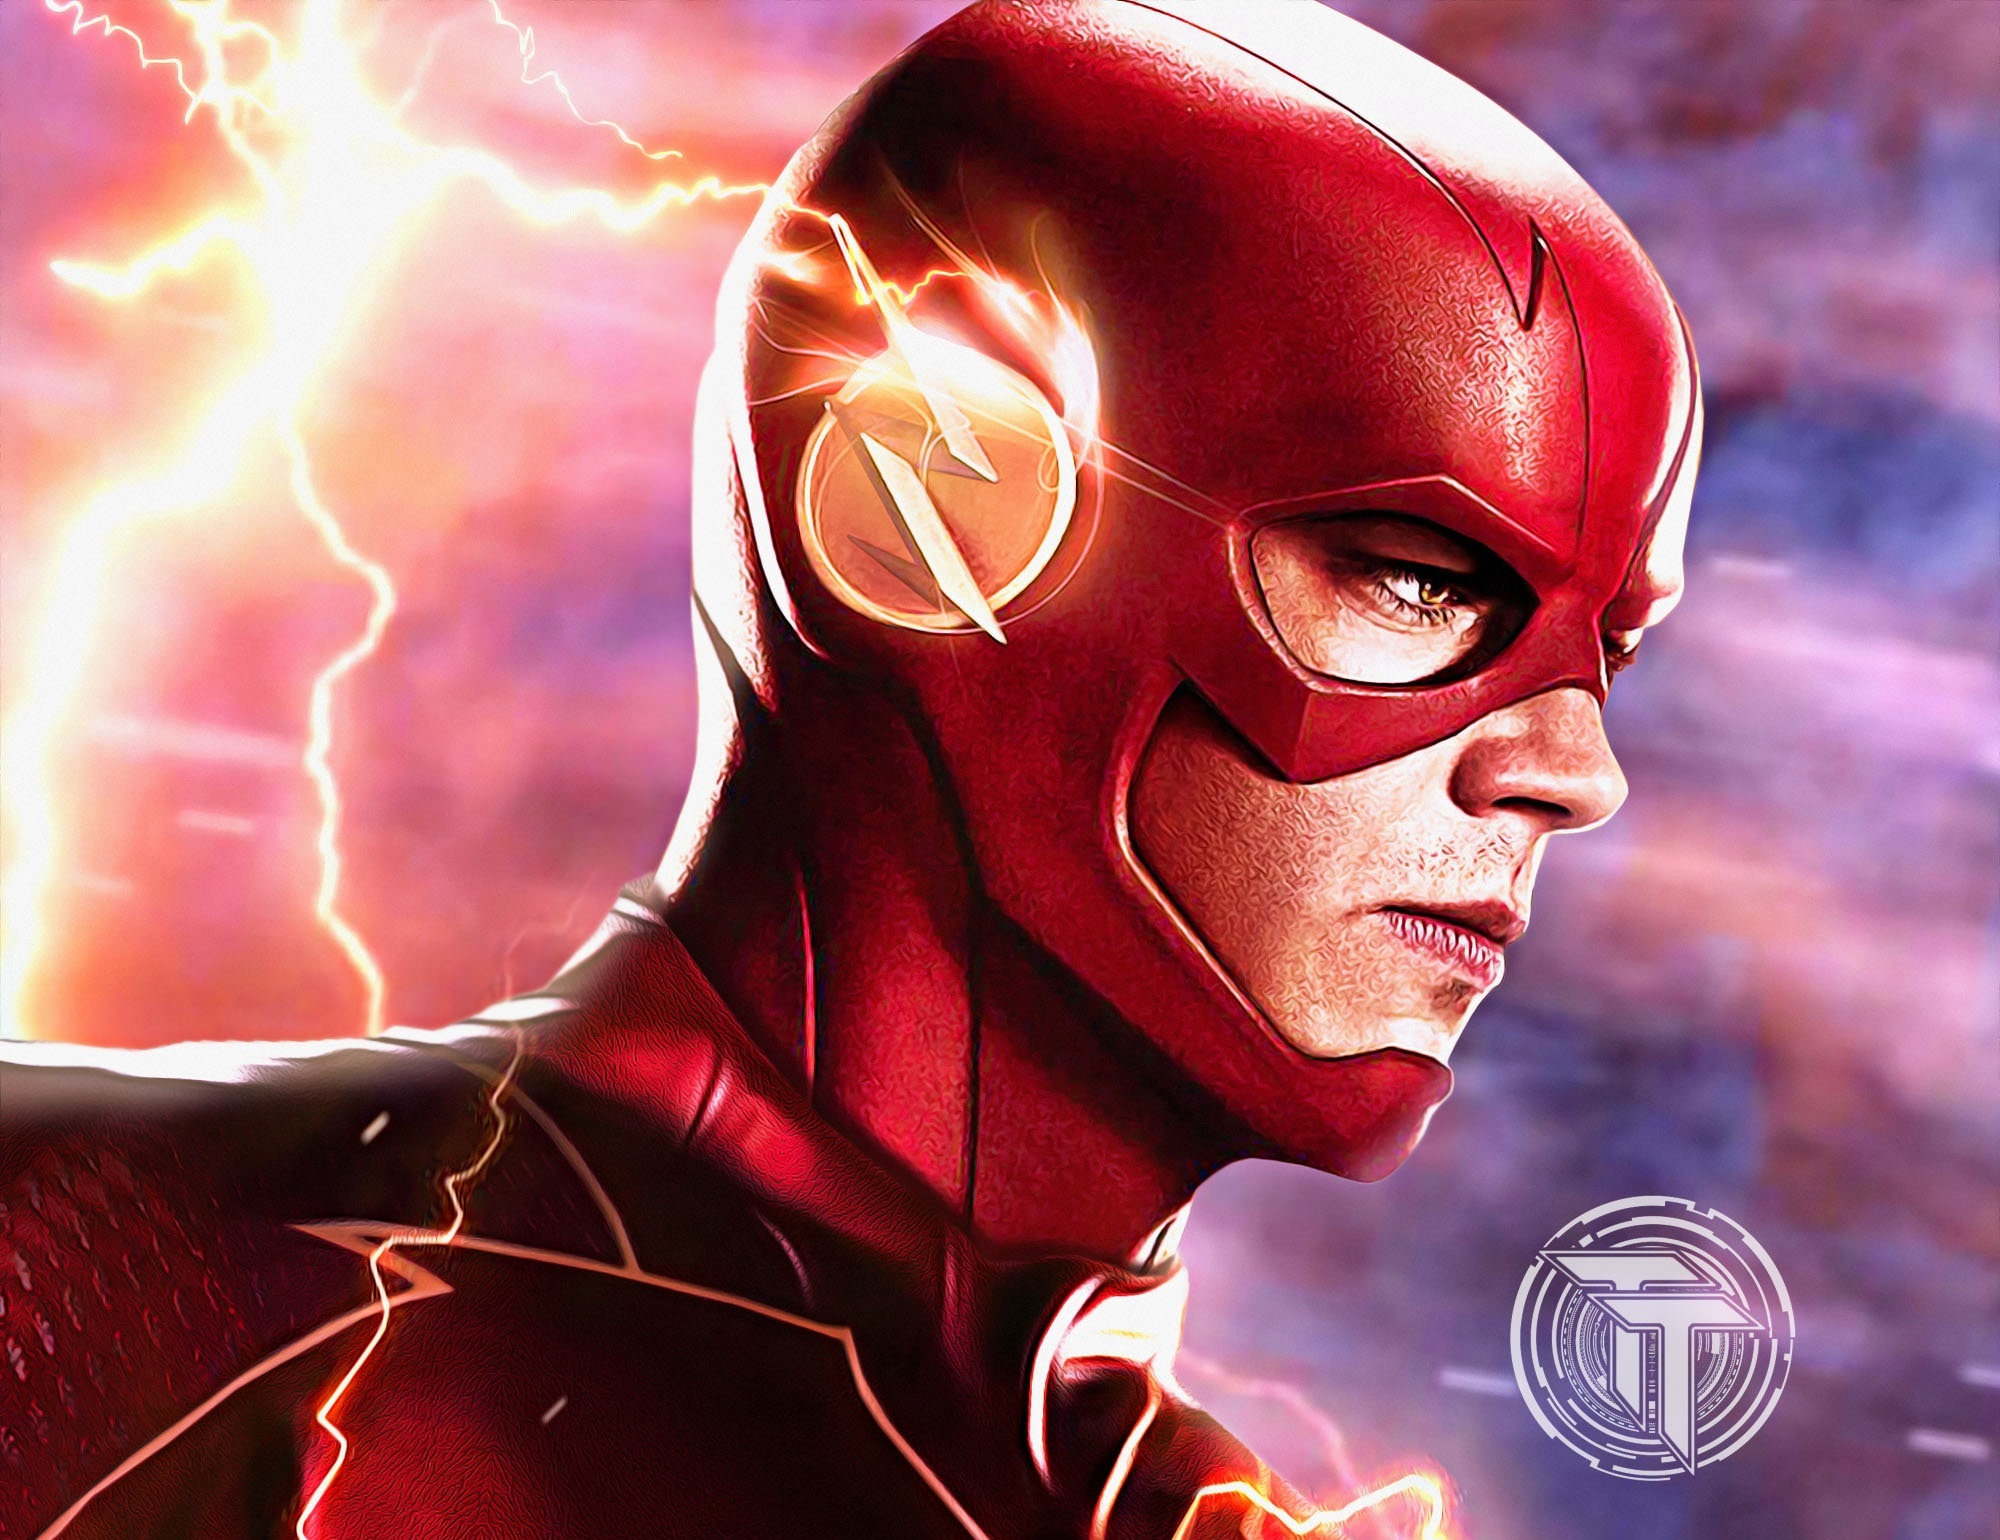 2014 Hd Wallpapers: The Flash (2014) HD Wallpapers, Pictures, Images